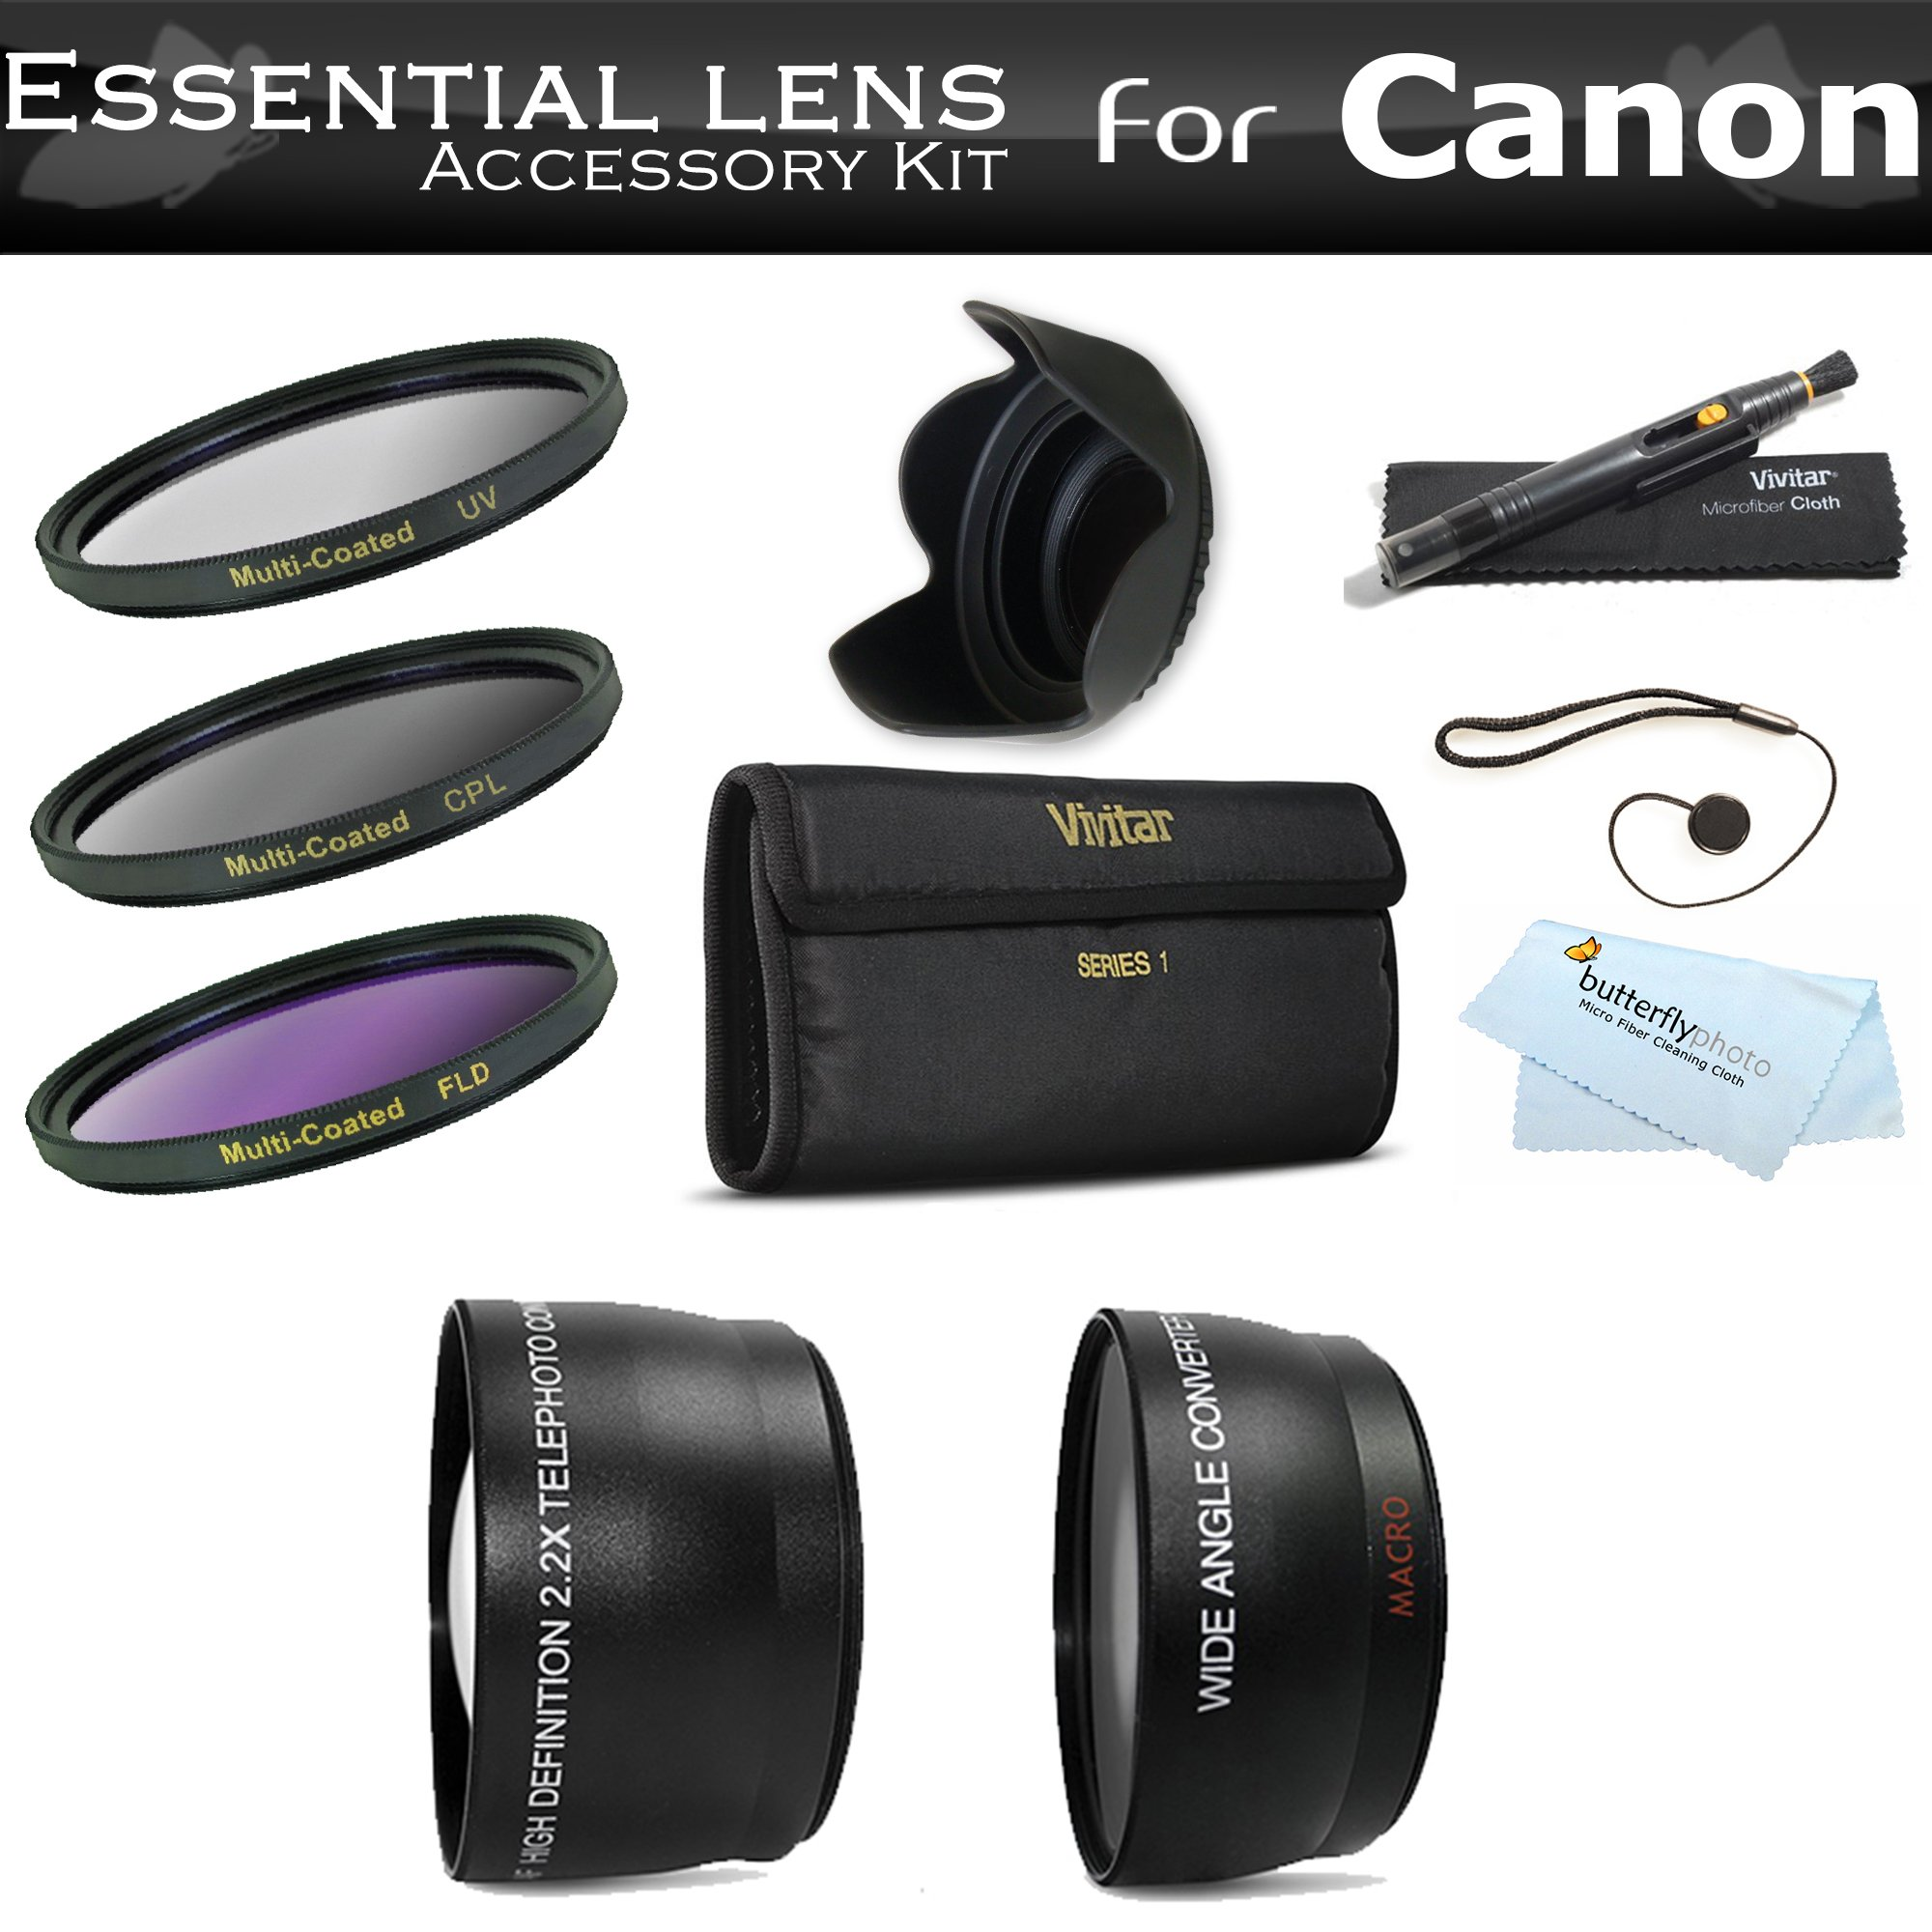 Deluxe All In Lens Kit For CANON VIXIA HF R82, HF R80, HF R800, HF R700, HF R72, HF R70 Camcorder Includes HD .43x Wide Angle Lens + 2.2x Telephoto Lens + 3 Piece Filter Kit (UV, CPL, FLD) + Much More by ButterflyPhoto